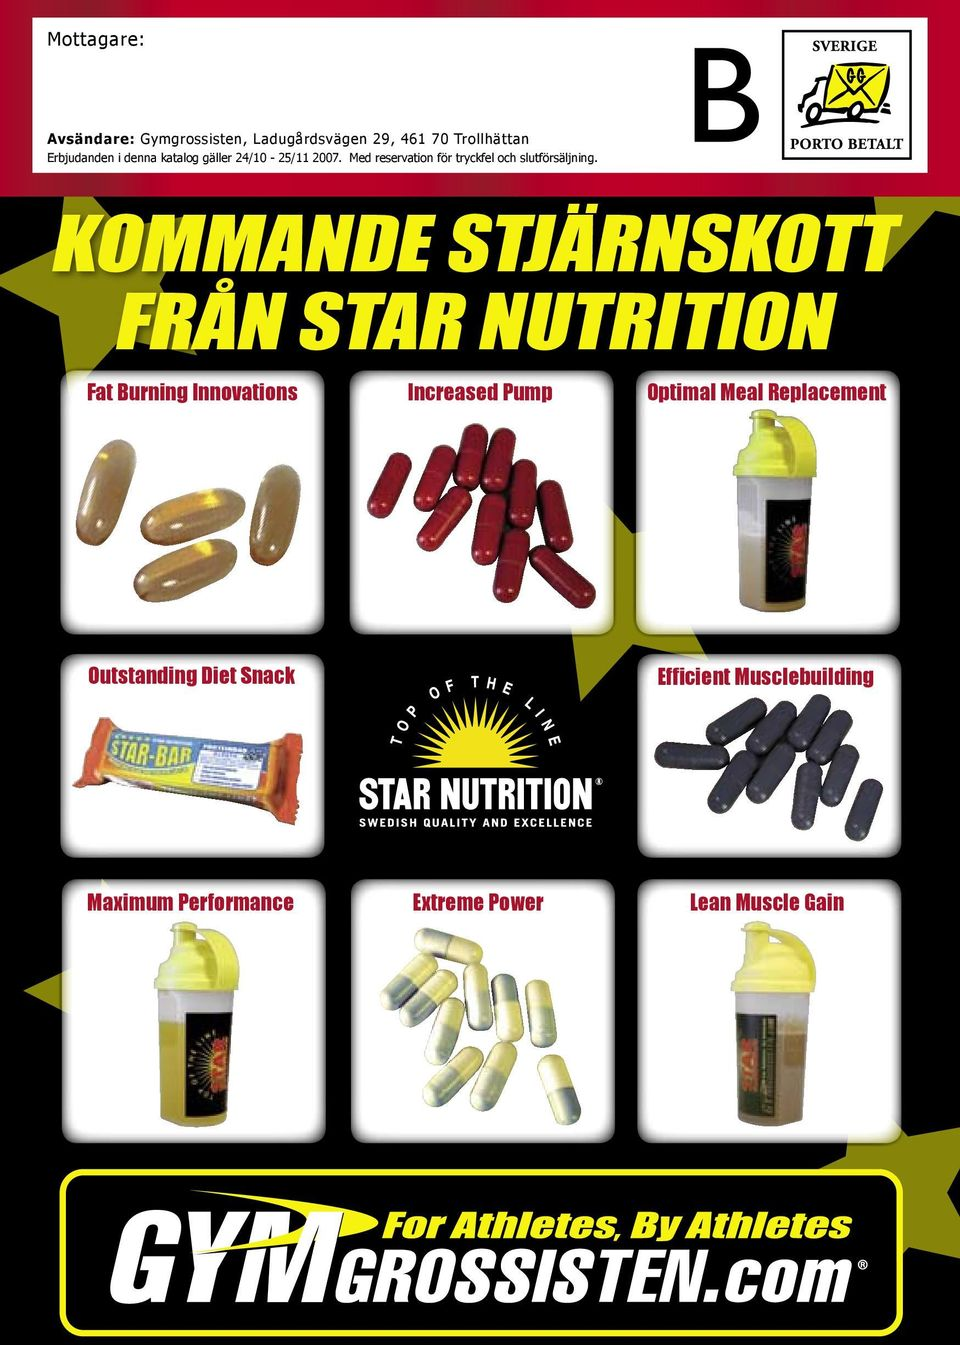 KOMMANDE STJÄRNSKOTT FRÅN STAR NUTRITION Fat Burning Innovations Increased Pump Optimal Meal Replacement